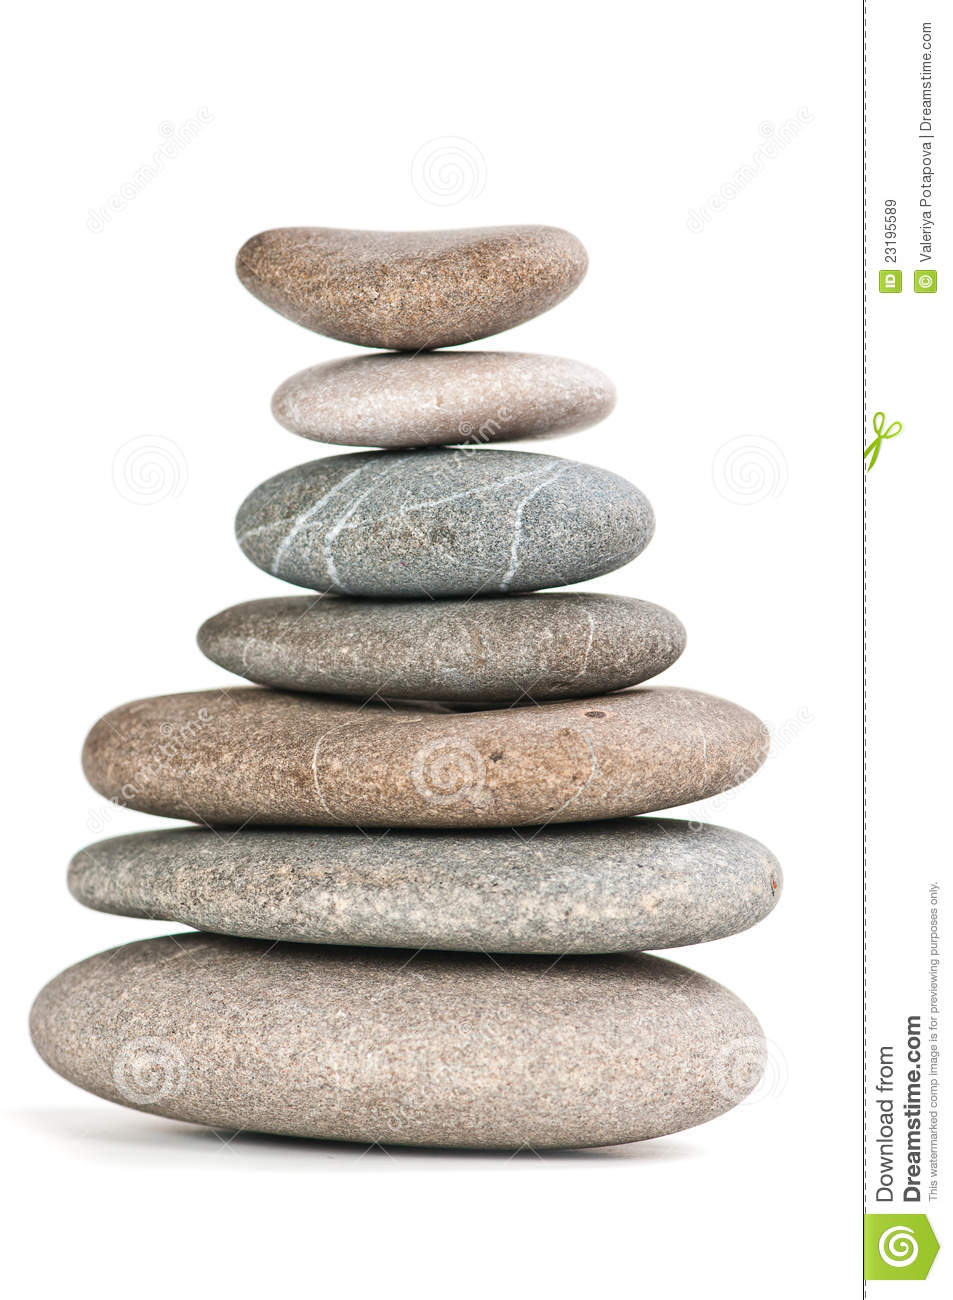 Stone stack clipart - Clipground